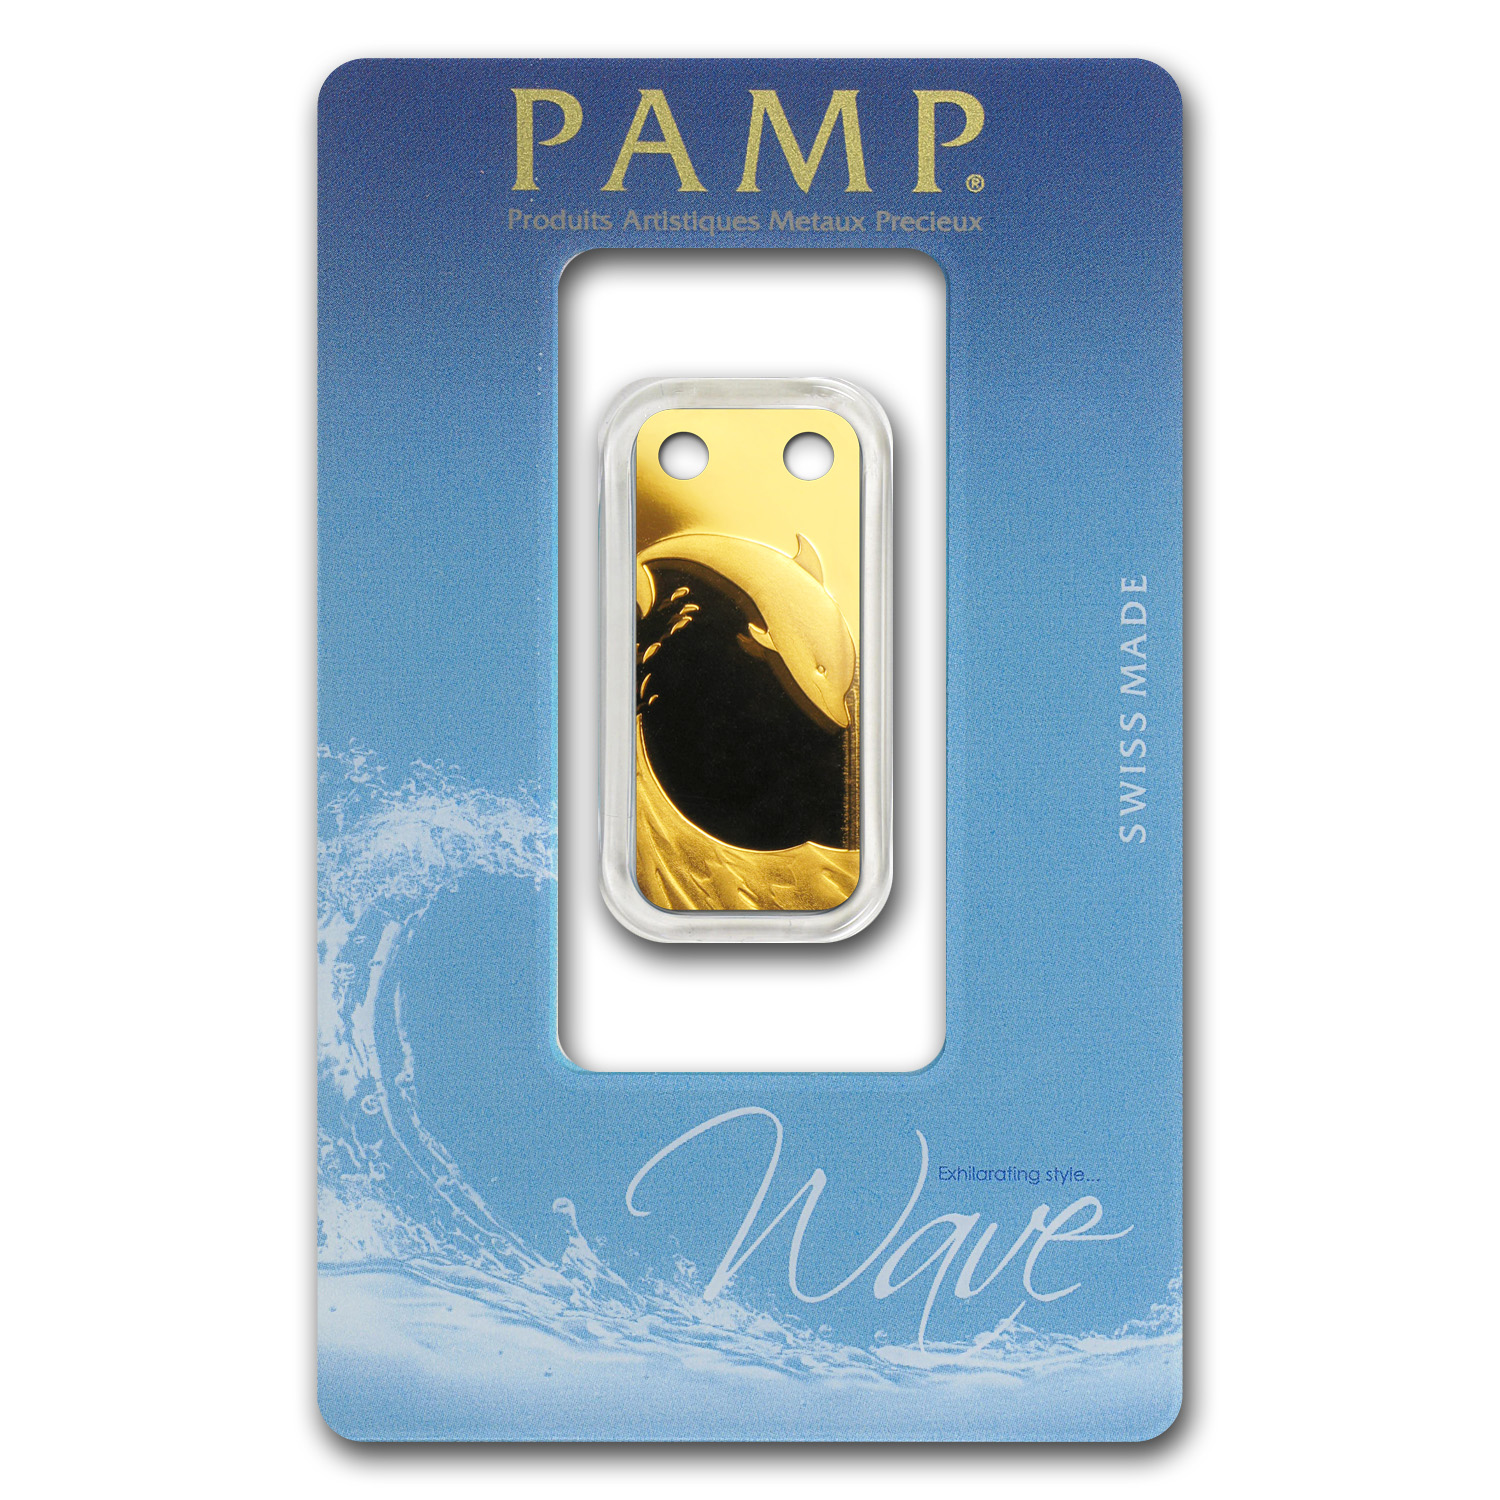 1/5 oz Gold Pendants - Pamp Suisse Ingot (Dolphin, Proof)